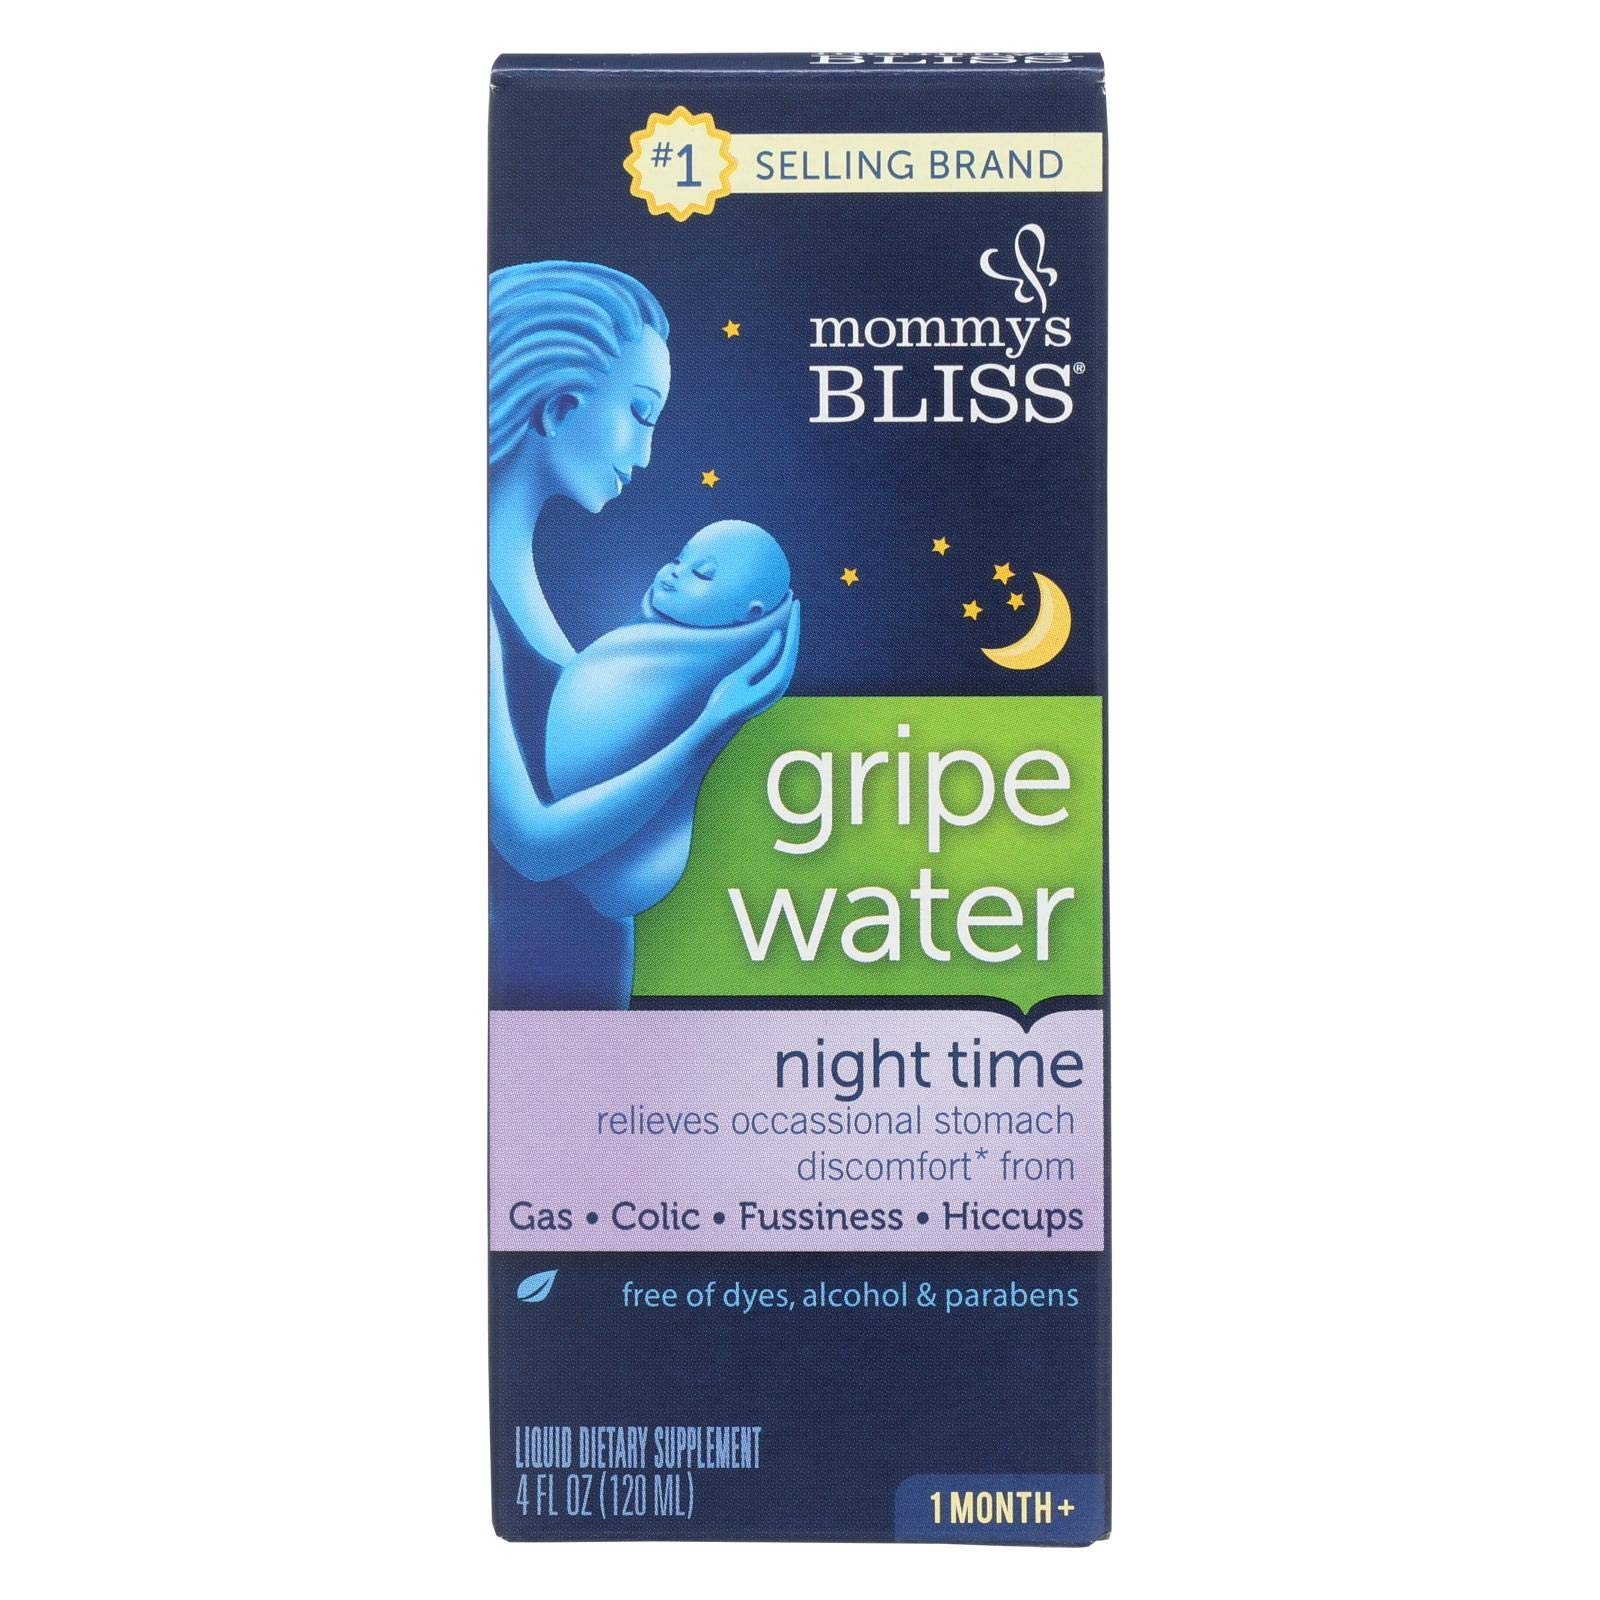 Mommys Bliss Gripe Water - Night Time - 4 oz (Pack of 6) by Mommy's Bliss